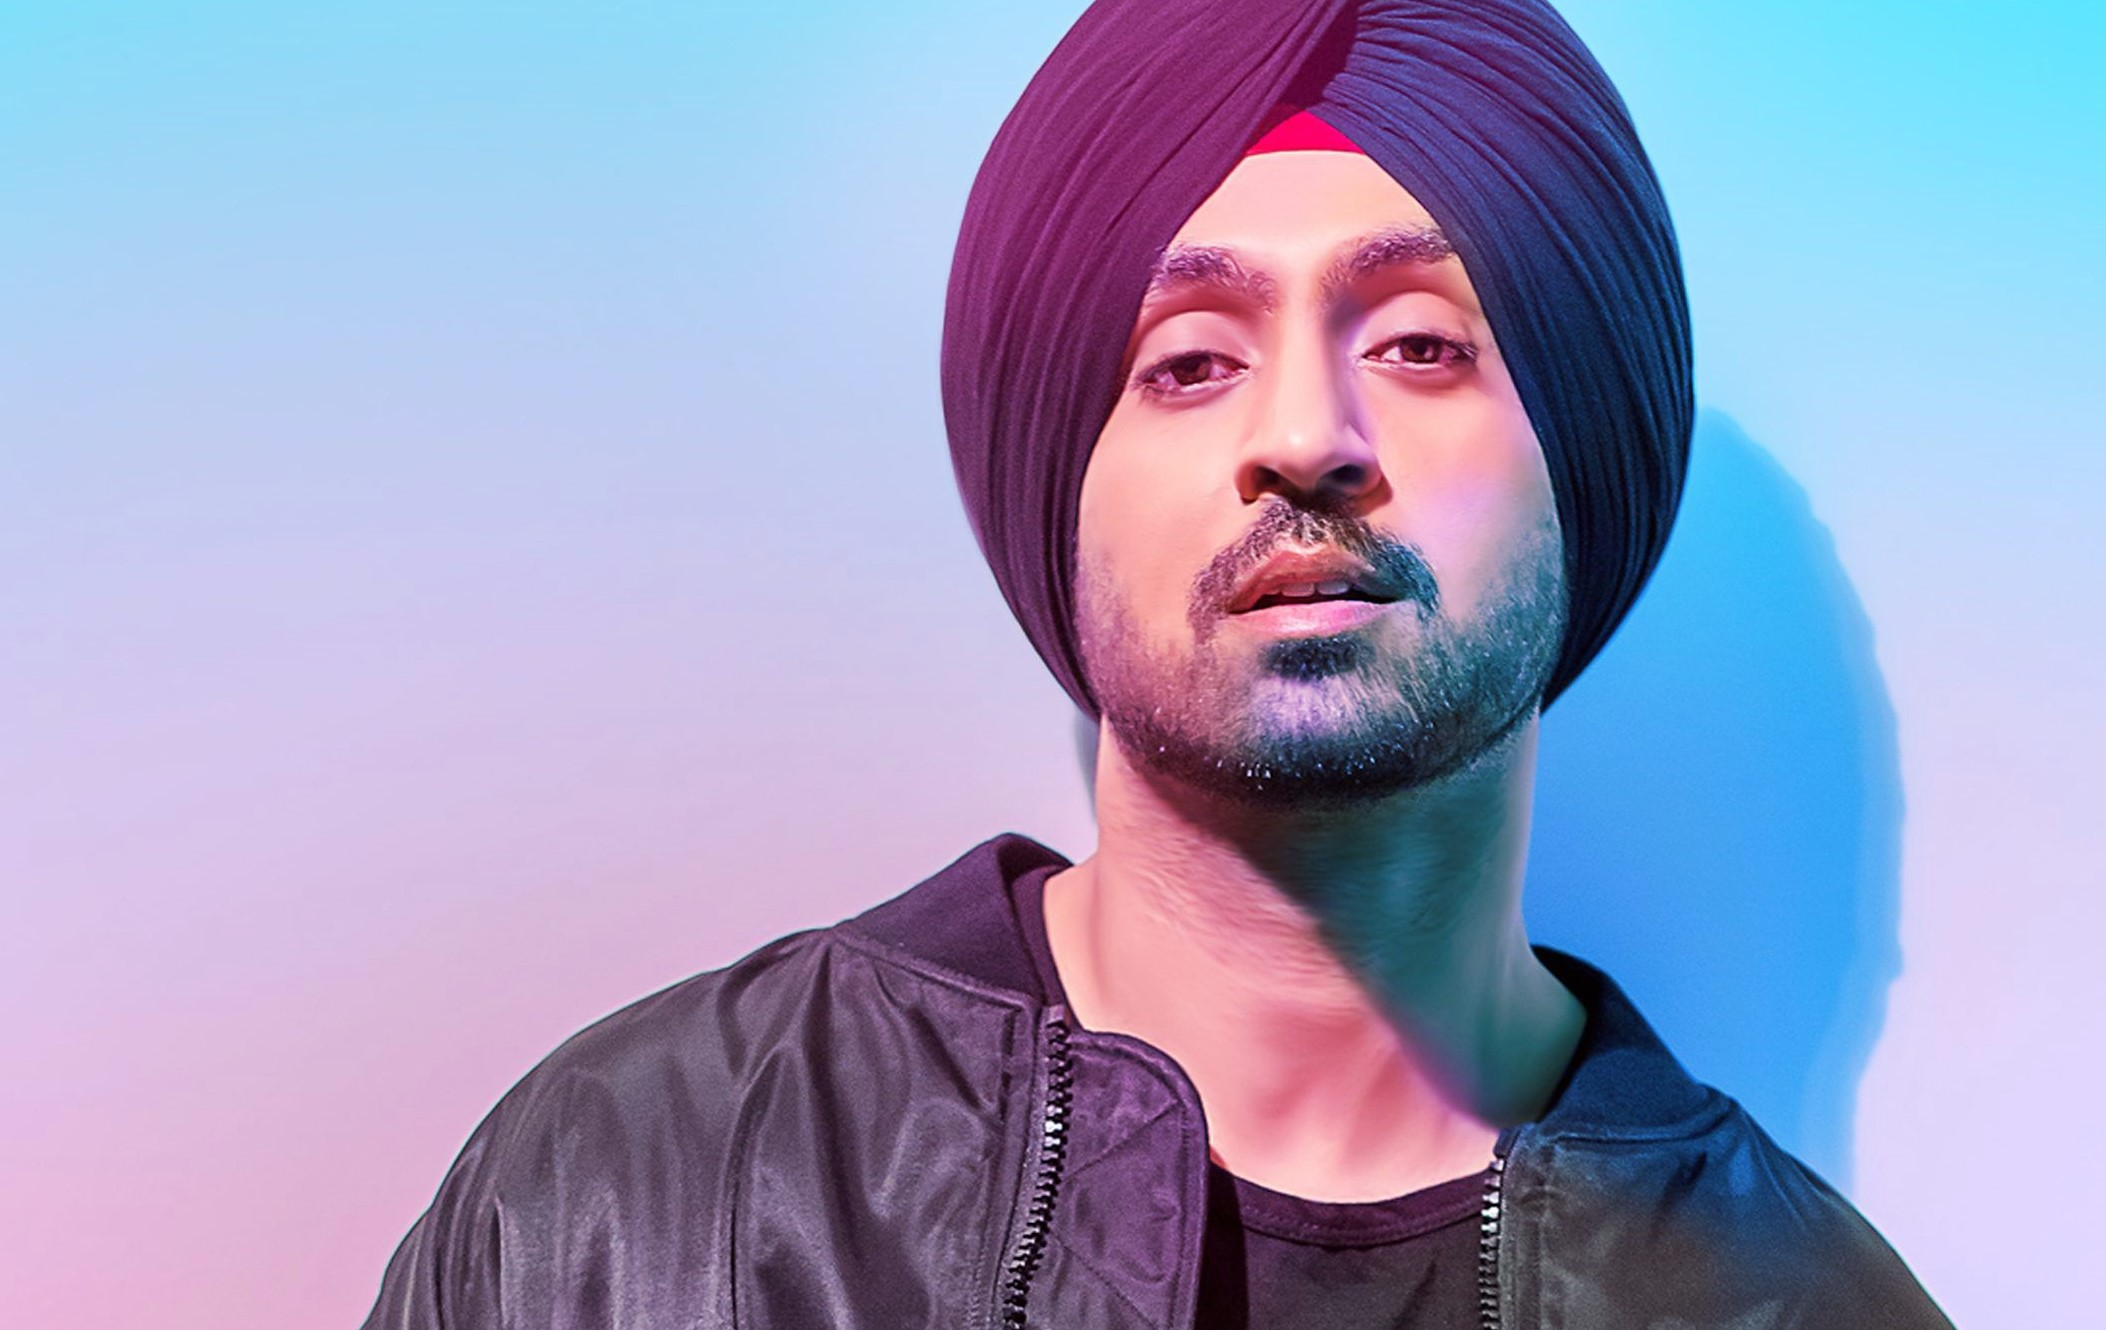 Diljit Dosanjh turned 37: Diljit is tenth, once due to poor financial condition of the family, used to sing Kirtan in the gurudwara, now the owner of 185 crores! MediaWinii 20/01/2021